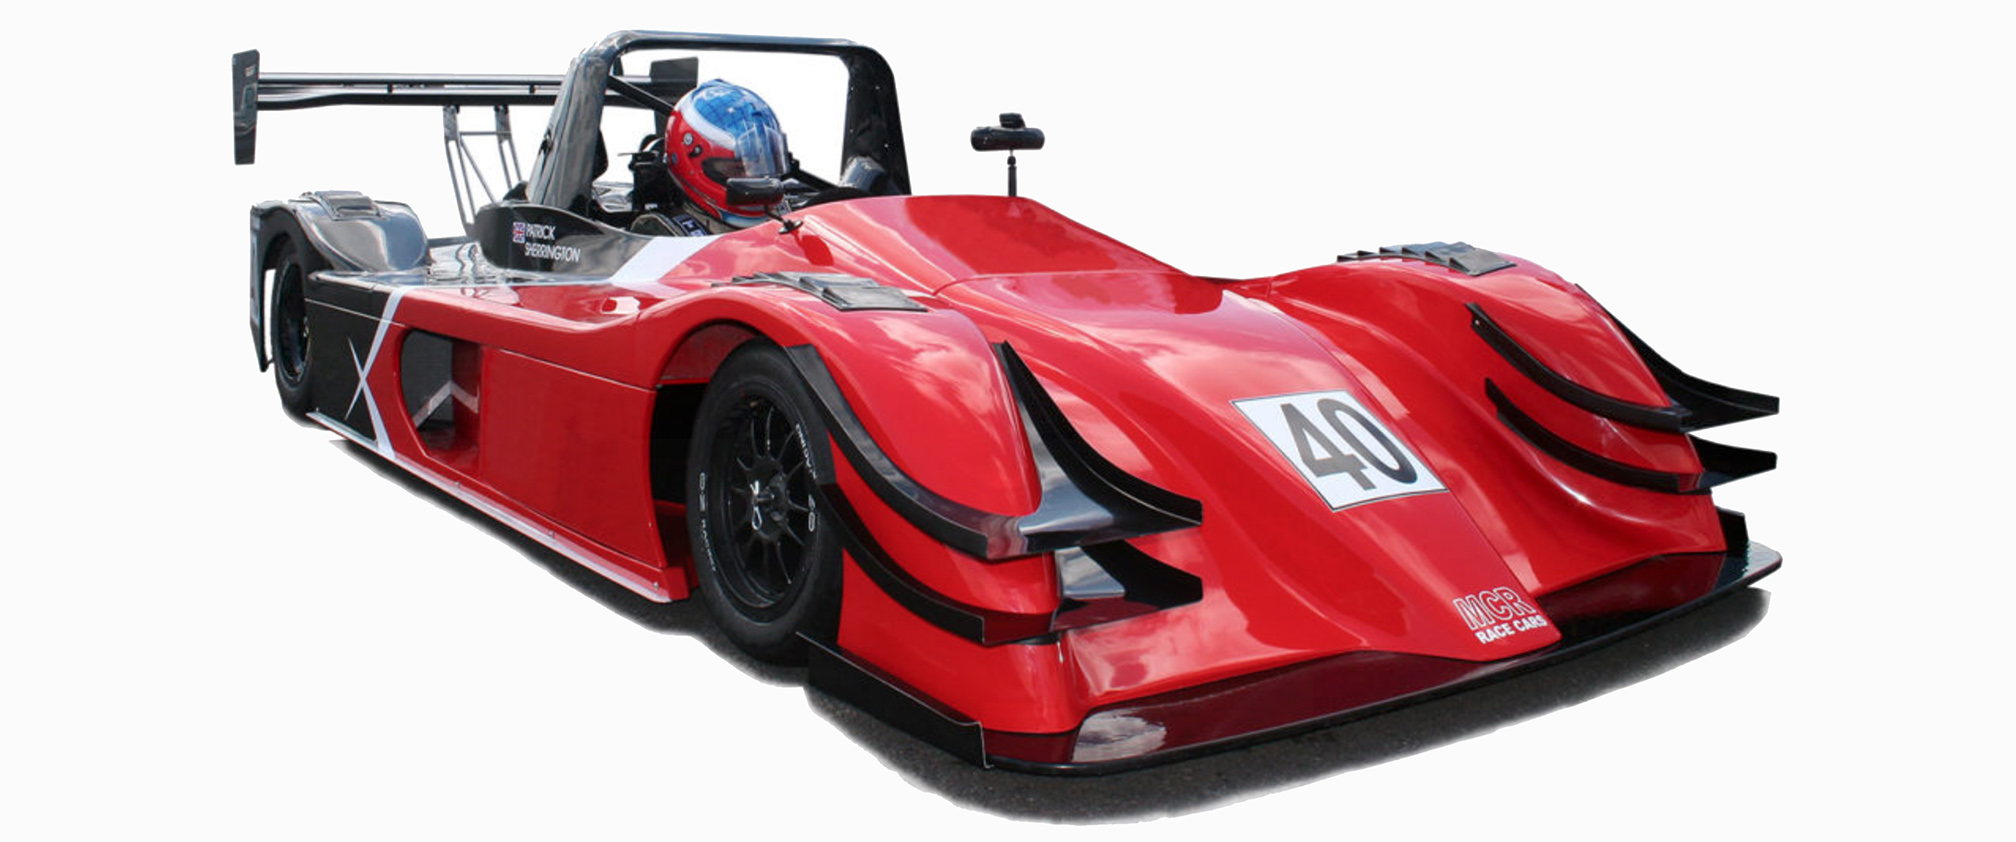 MCR Racing Cars sports prototype